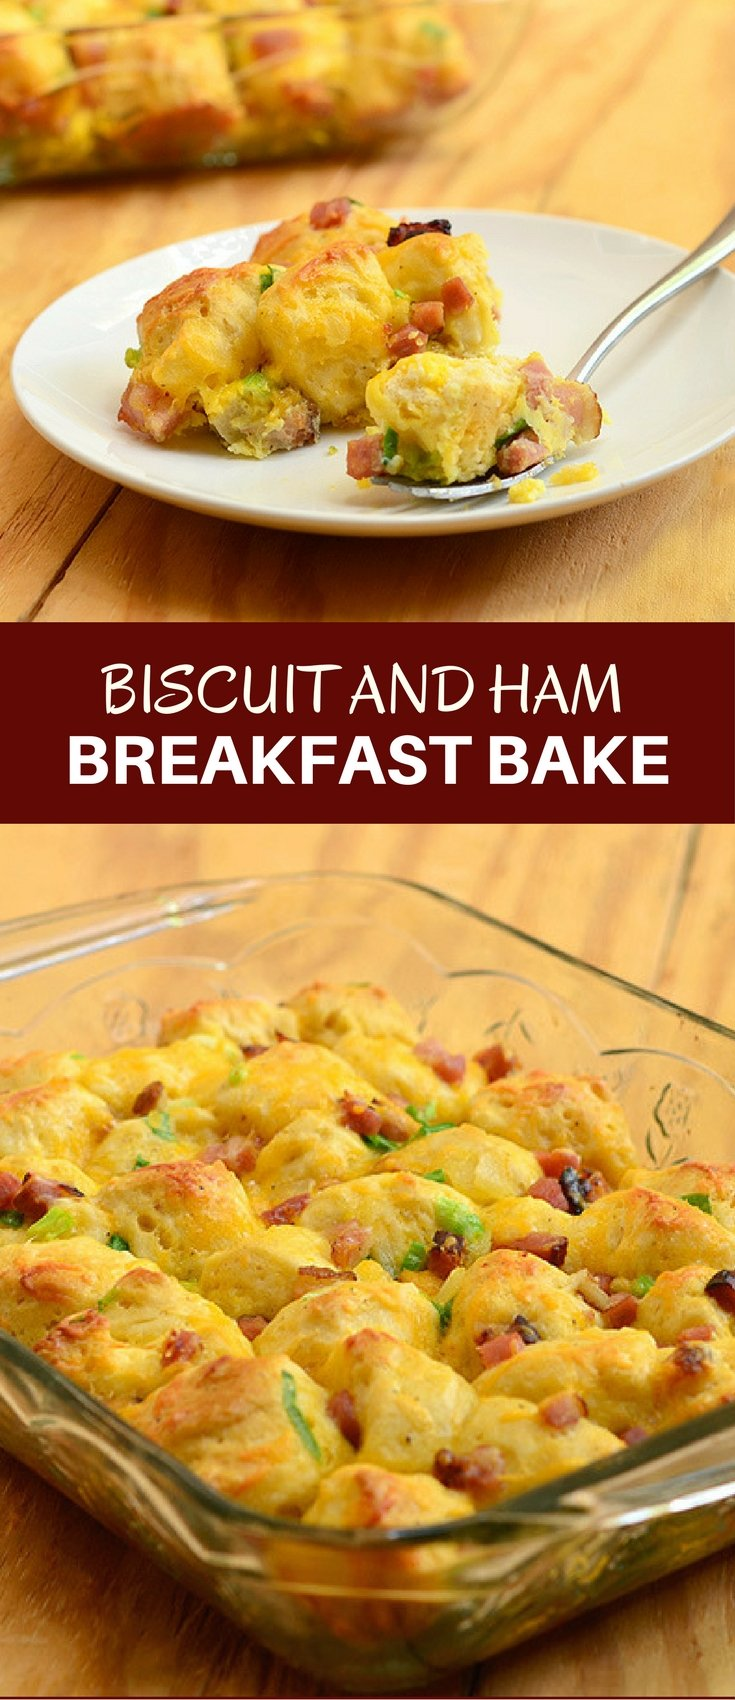 Biscuit and Ham Breakfast Bake with diced ham, tender biscuits, eggs, and cheese is a hearty casserole perfect for breakfast or brunch. Can be made ahead for busy work days!